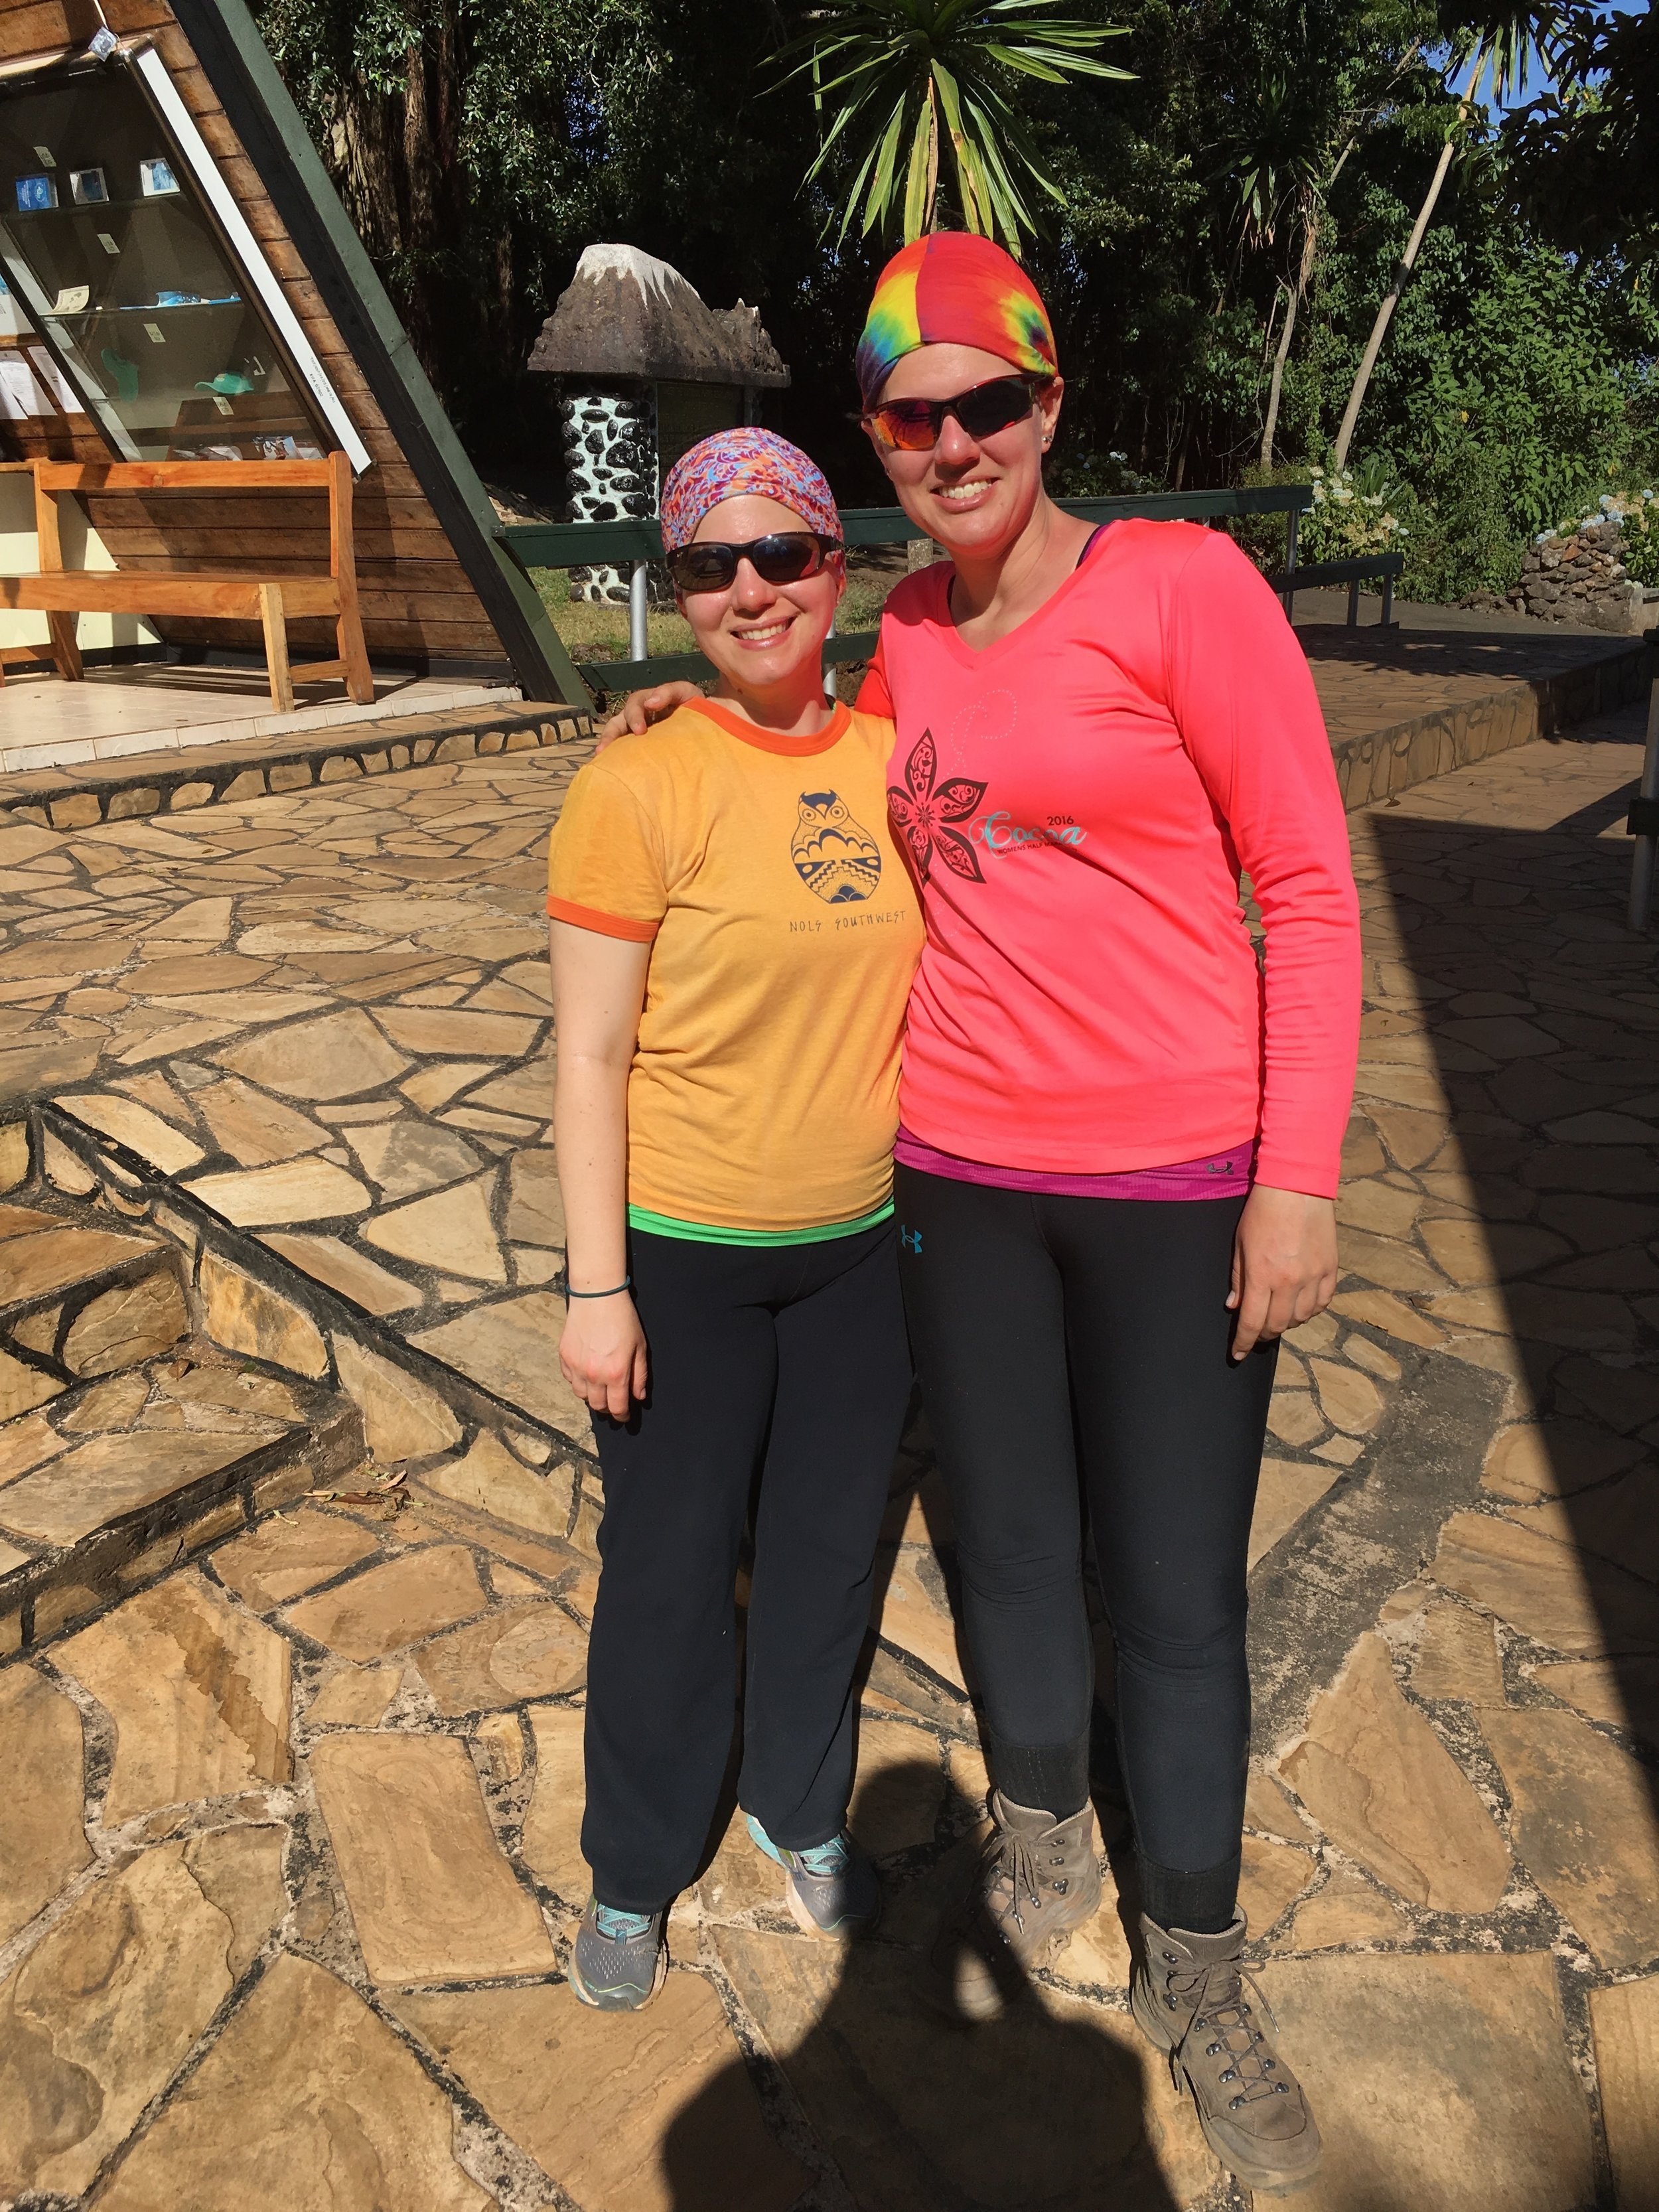 With my dear friend Emily at the Kilimanjaro Park exit gate ... on my birthday. We made it, despite our toenails protesting otherwise.